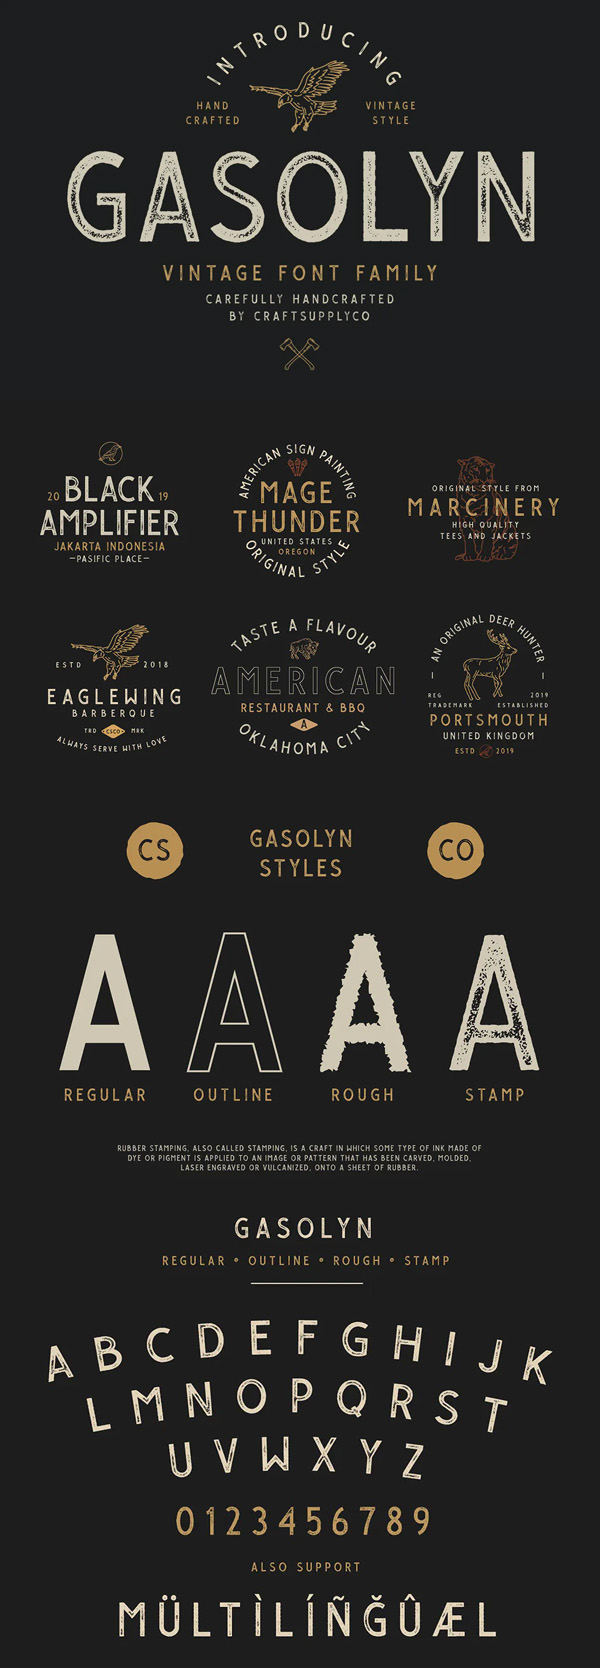 Gasolyn - Vintage Font Family